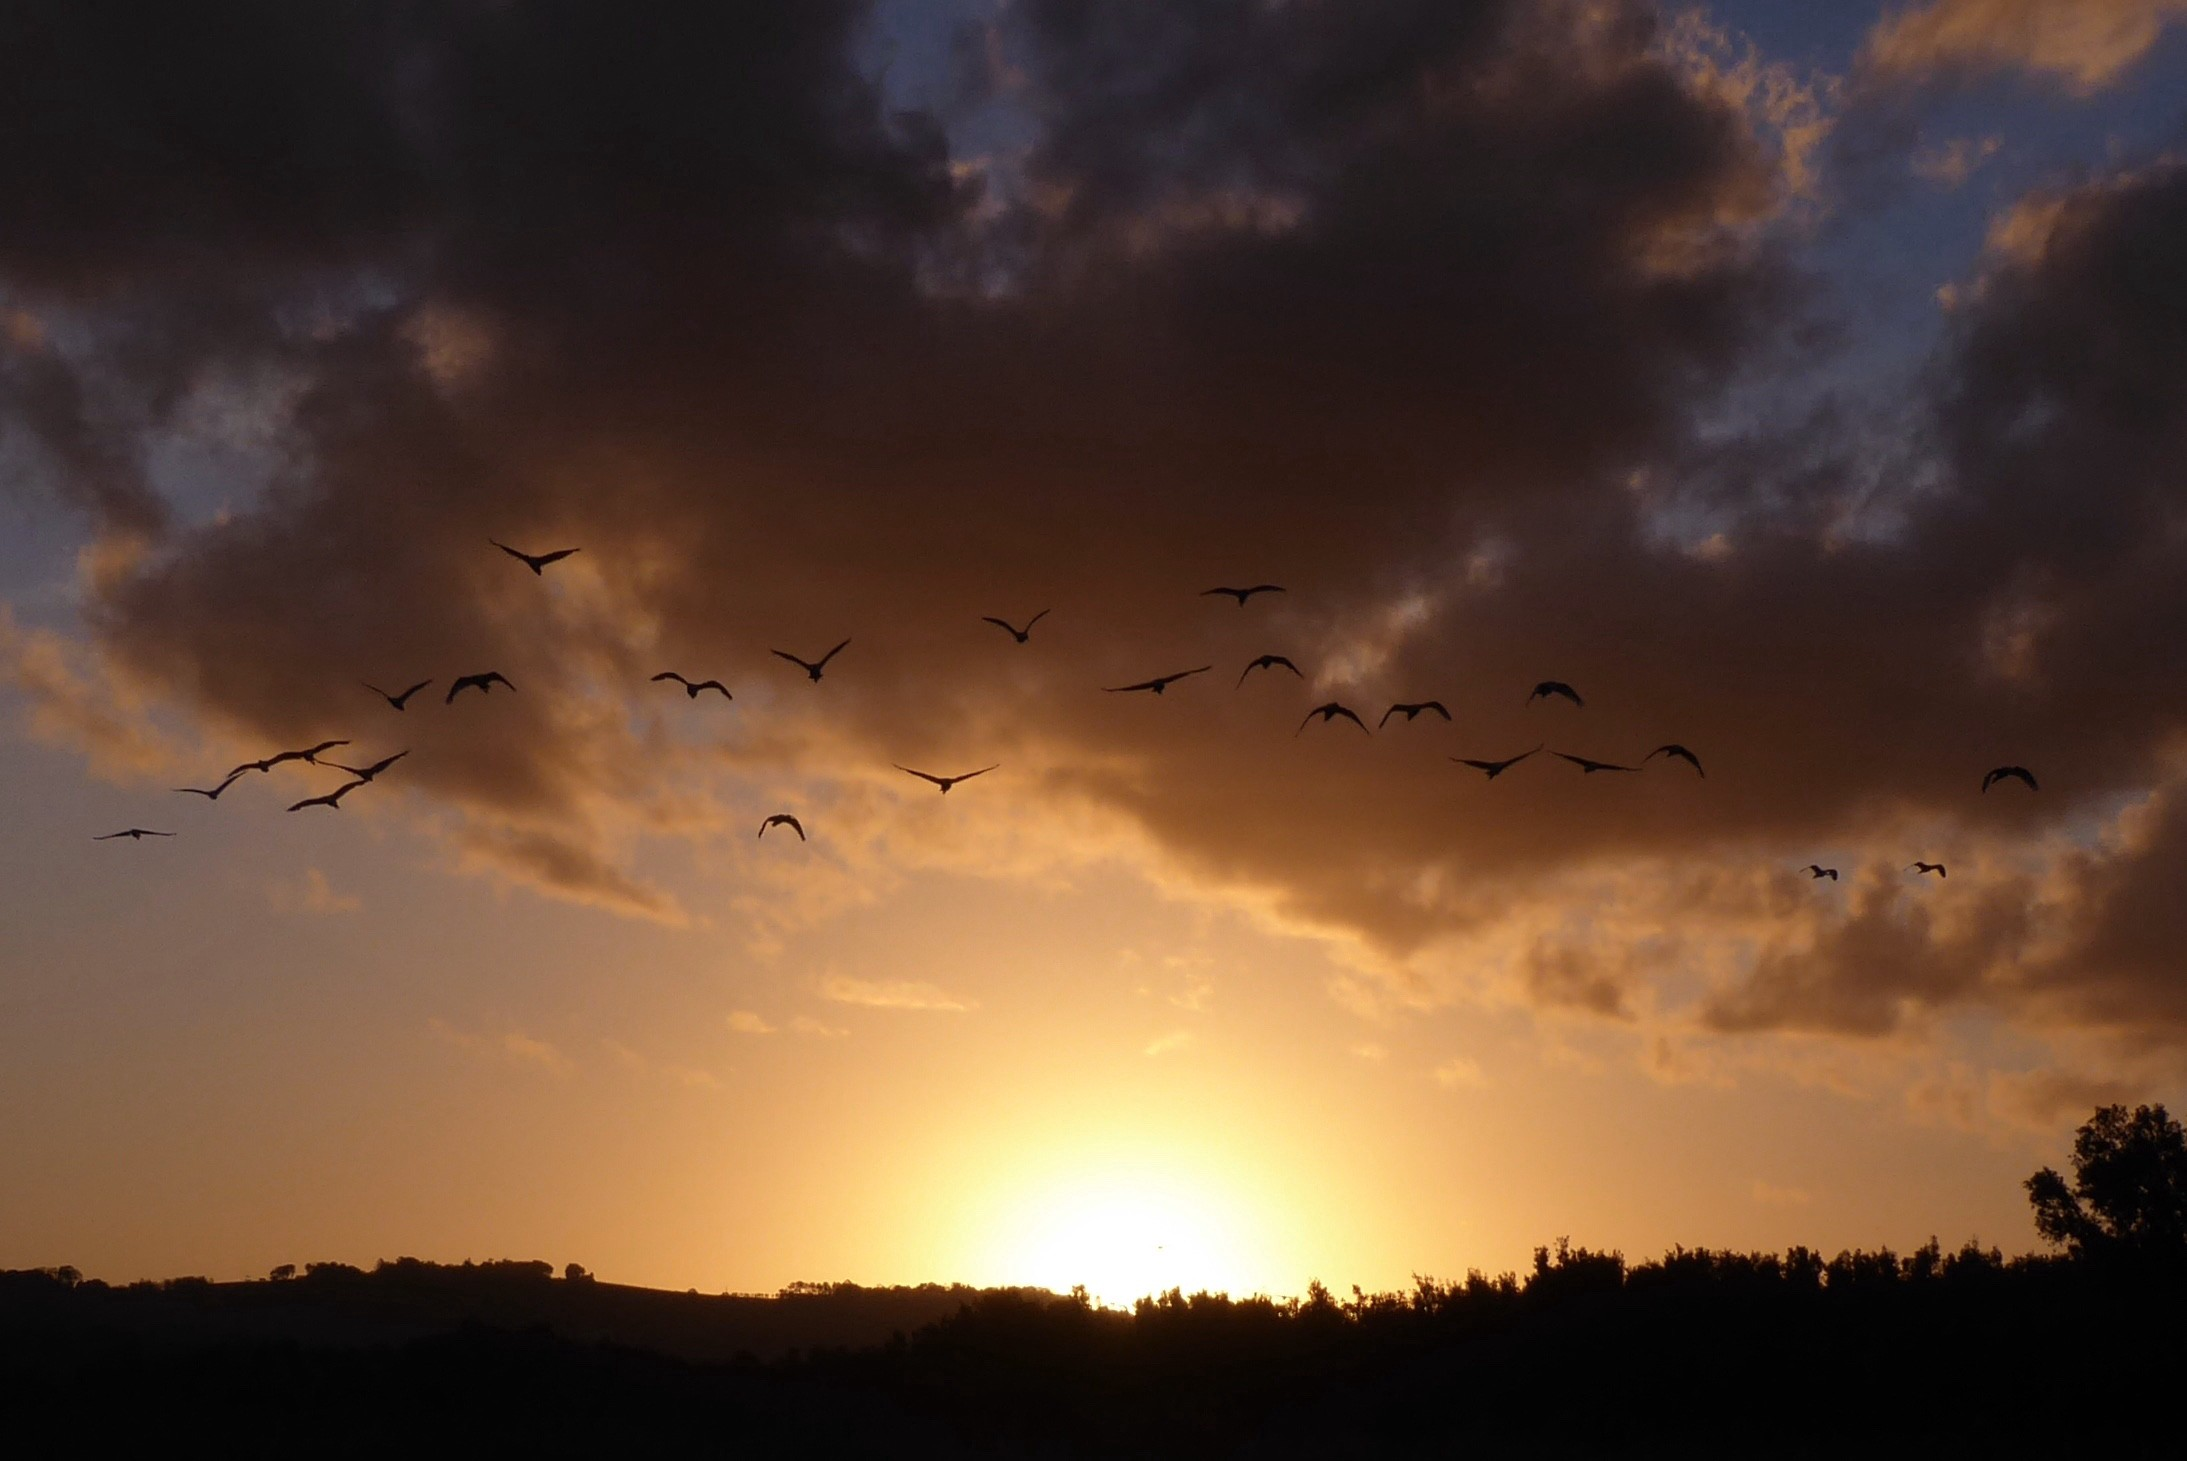 A sunset below the clouds with a line of ibis flying home to roost